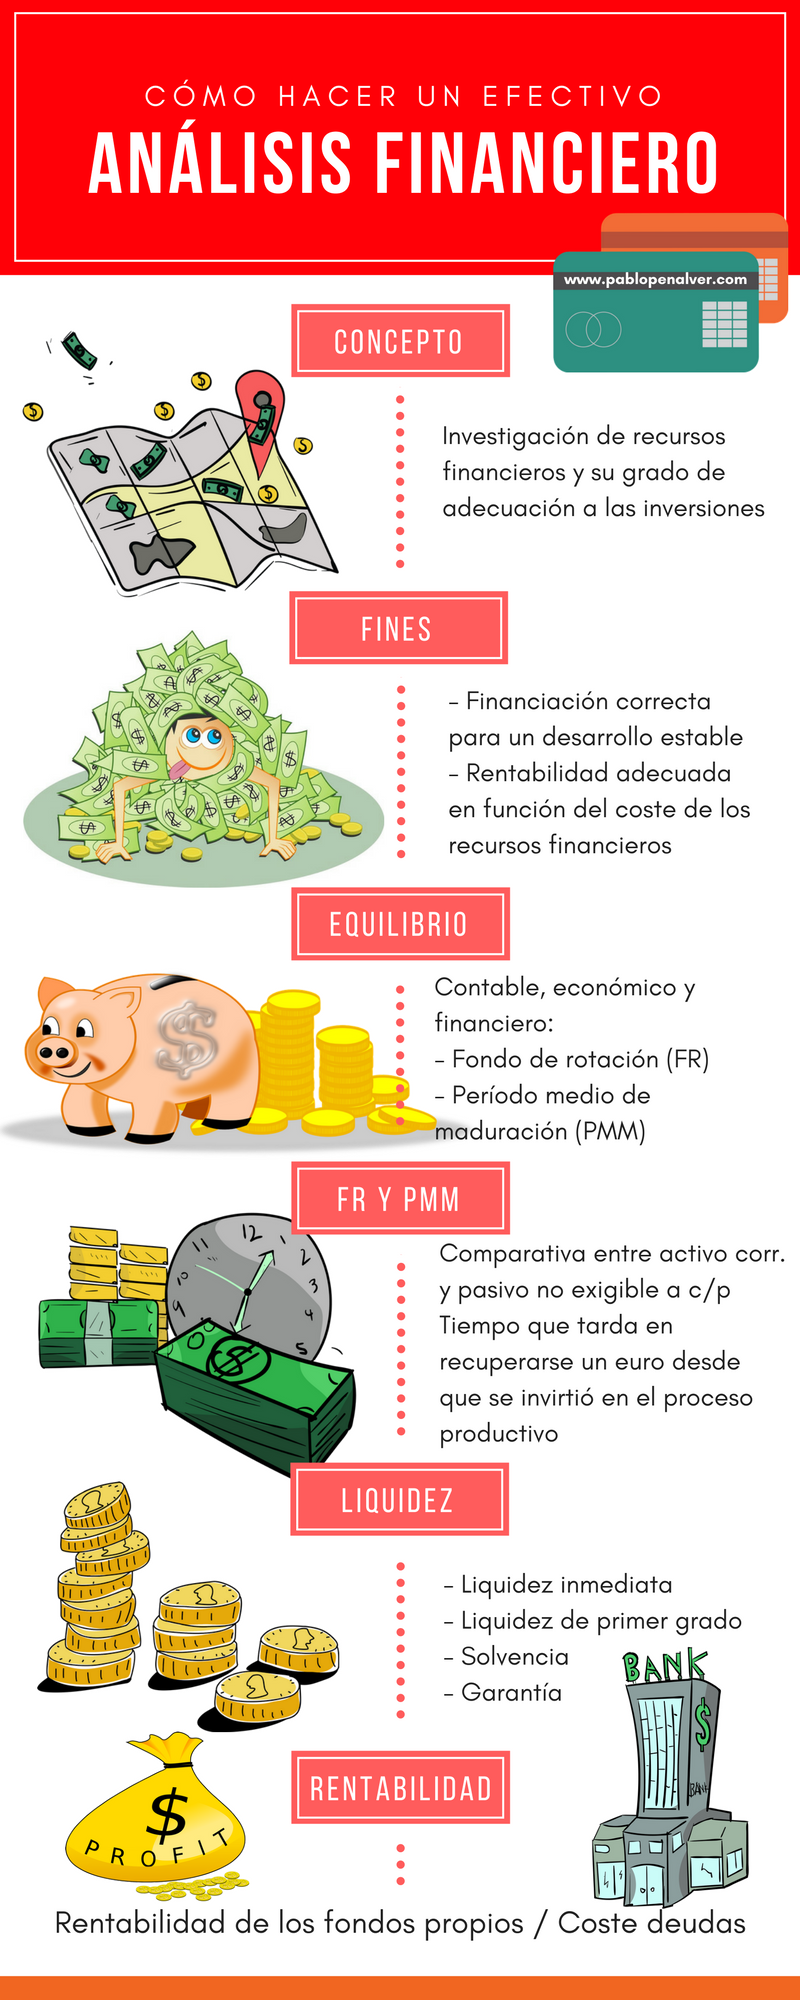 04-analisis-financiero